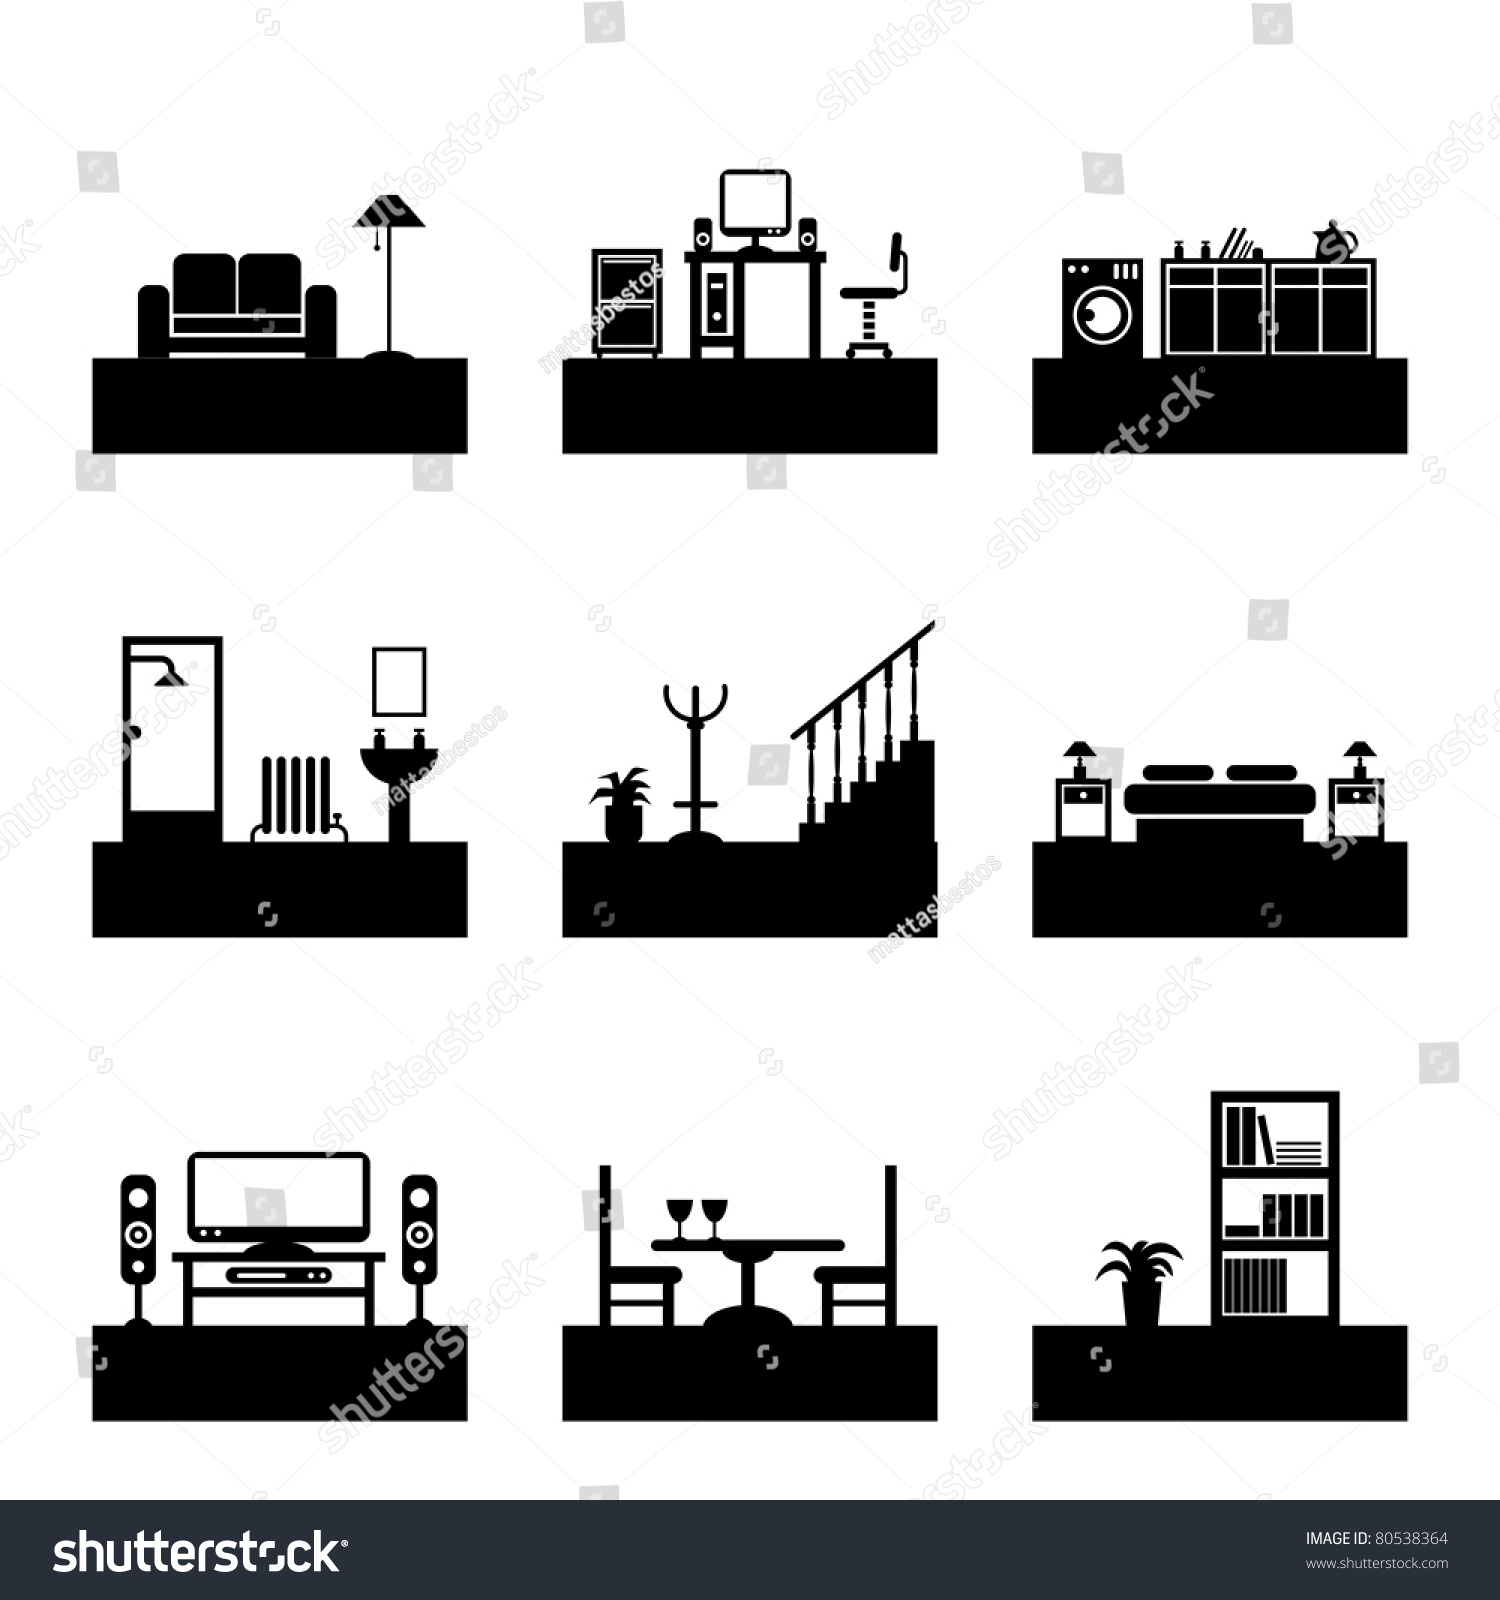 Home Interior Design Silhouette Icons Easily Stock Vector ...